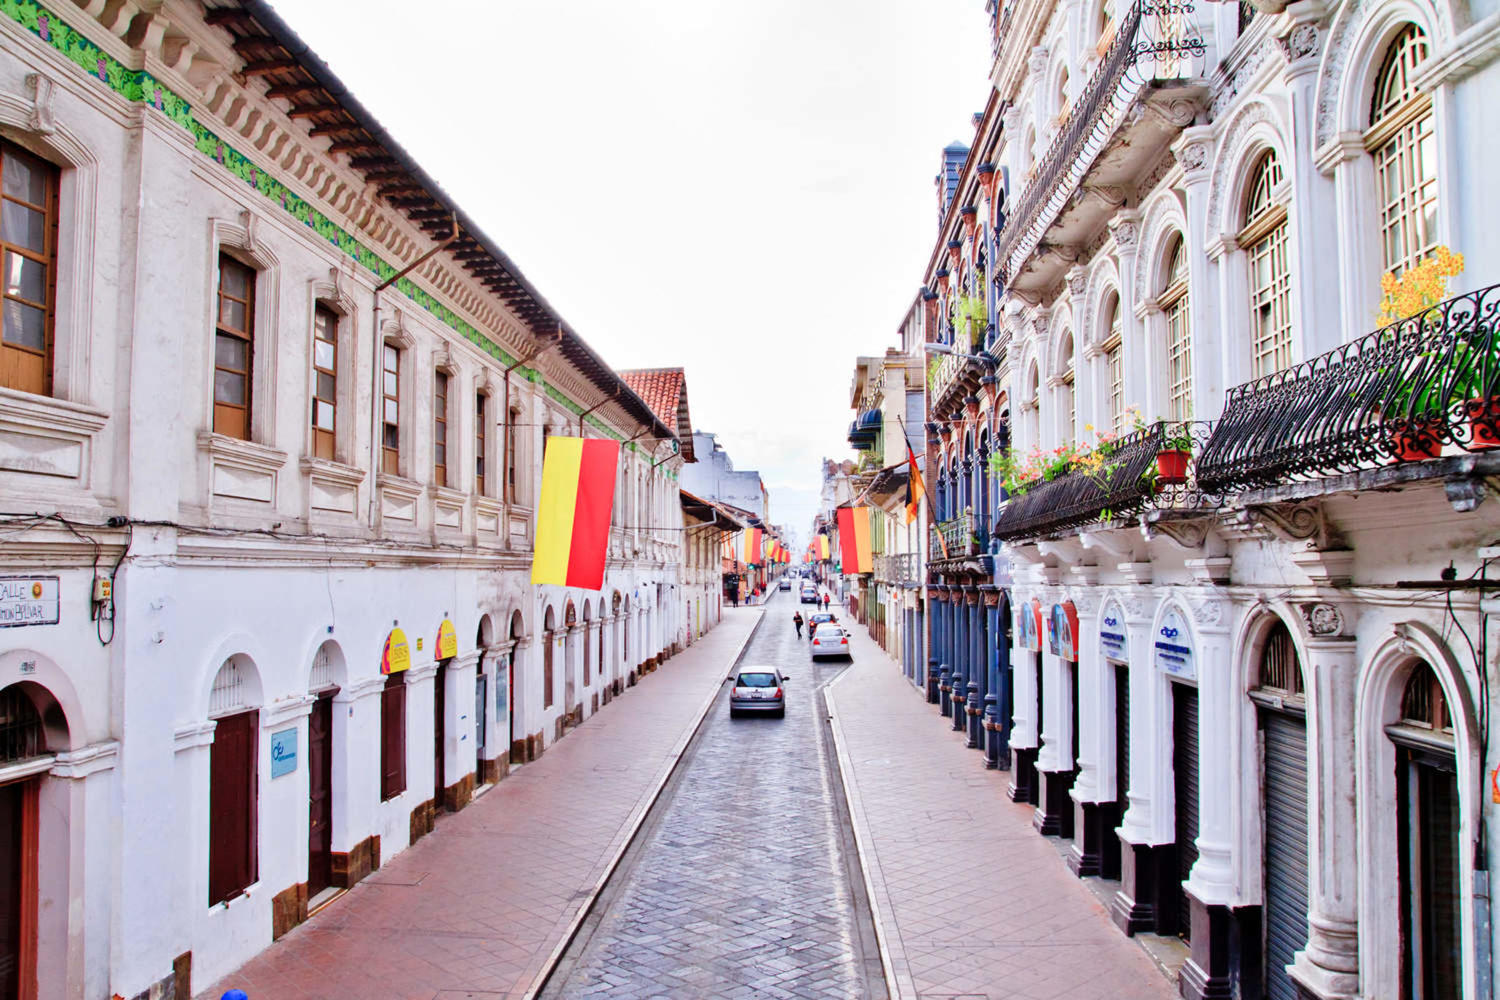 Streets of Cuenca during festivities